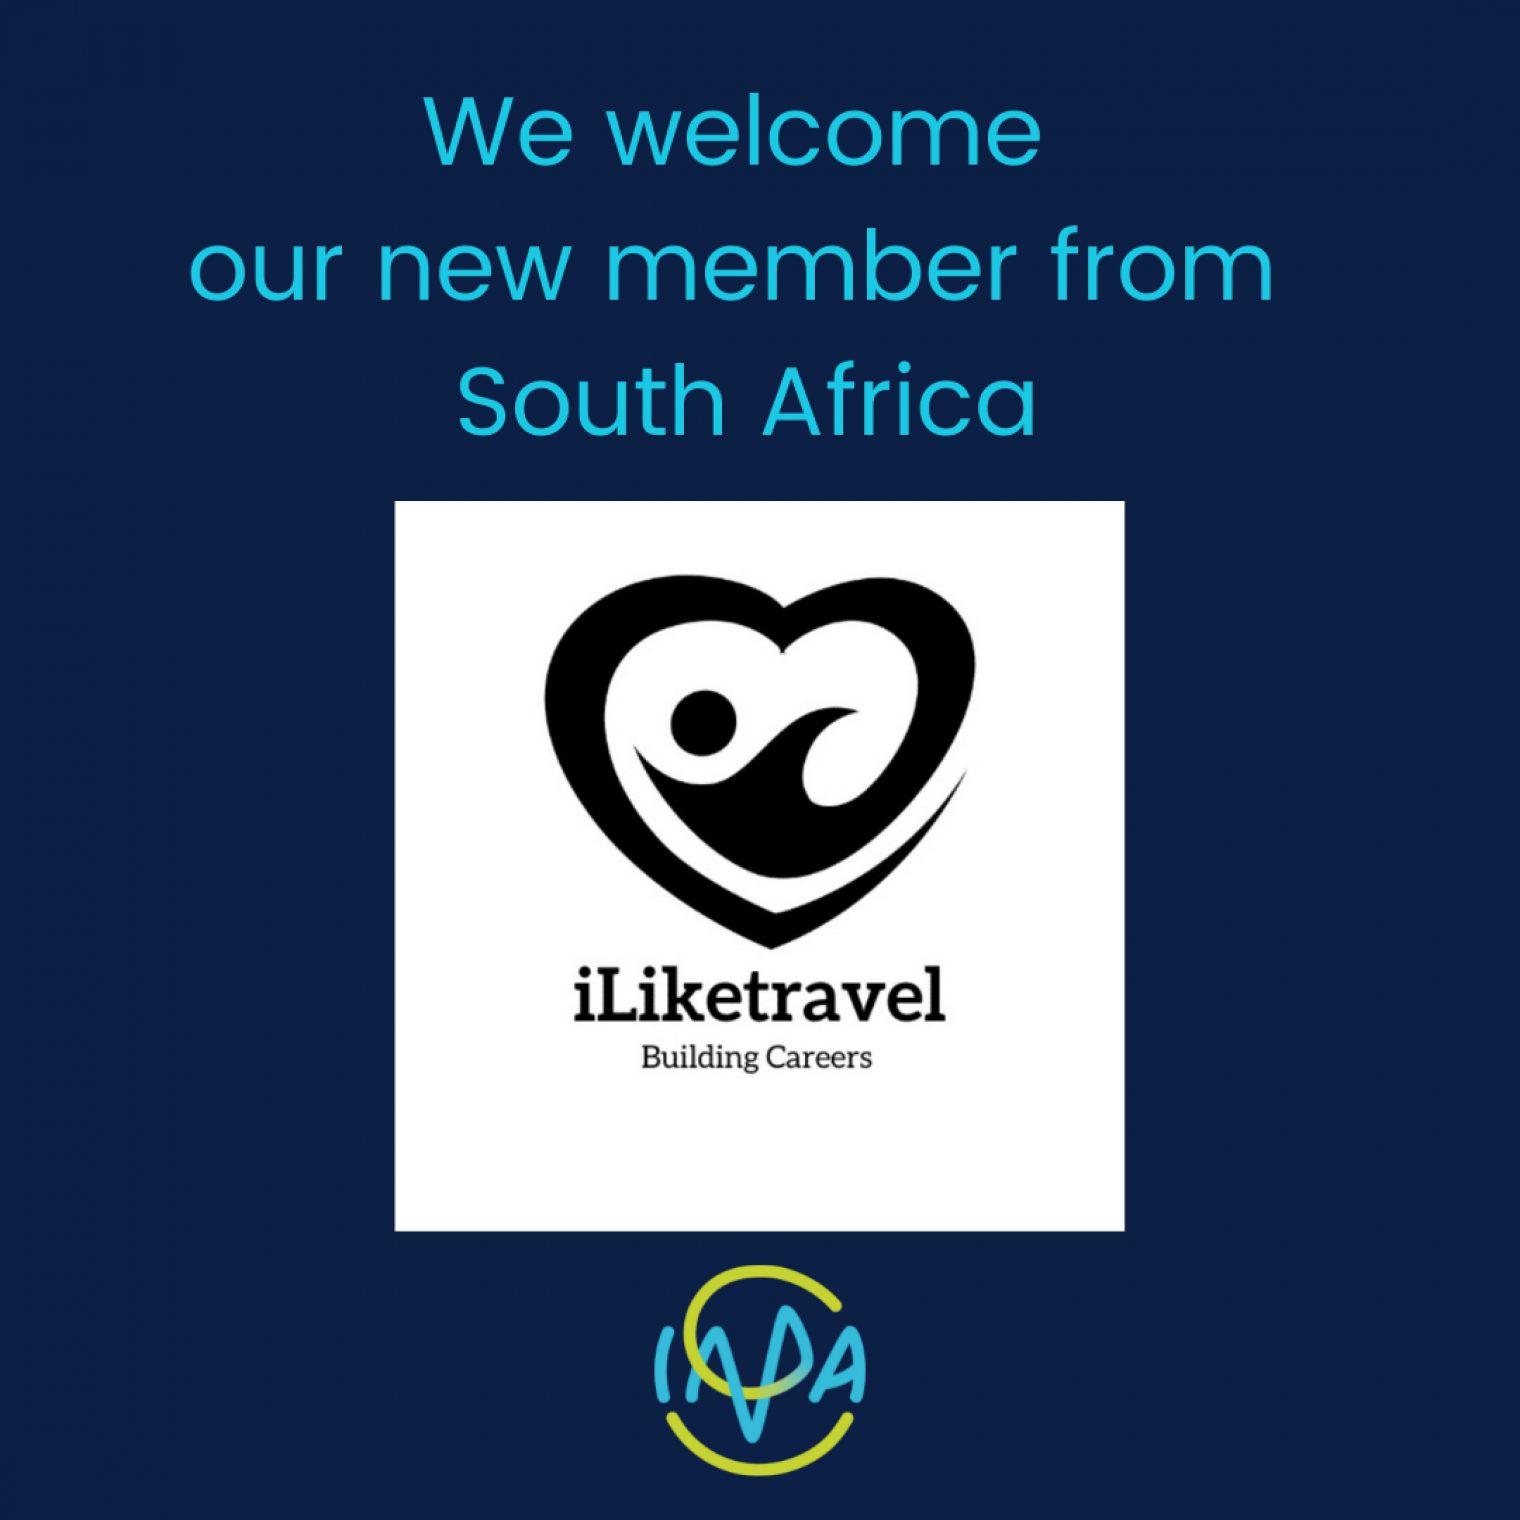 We welcome our latest member iLiketravel, South Africa